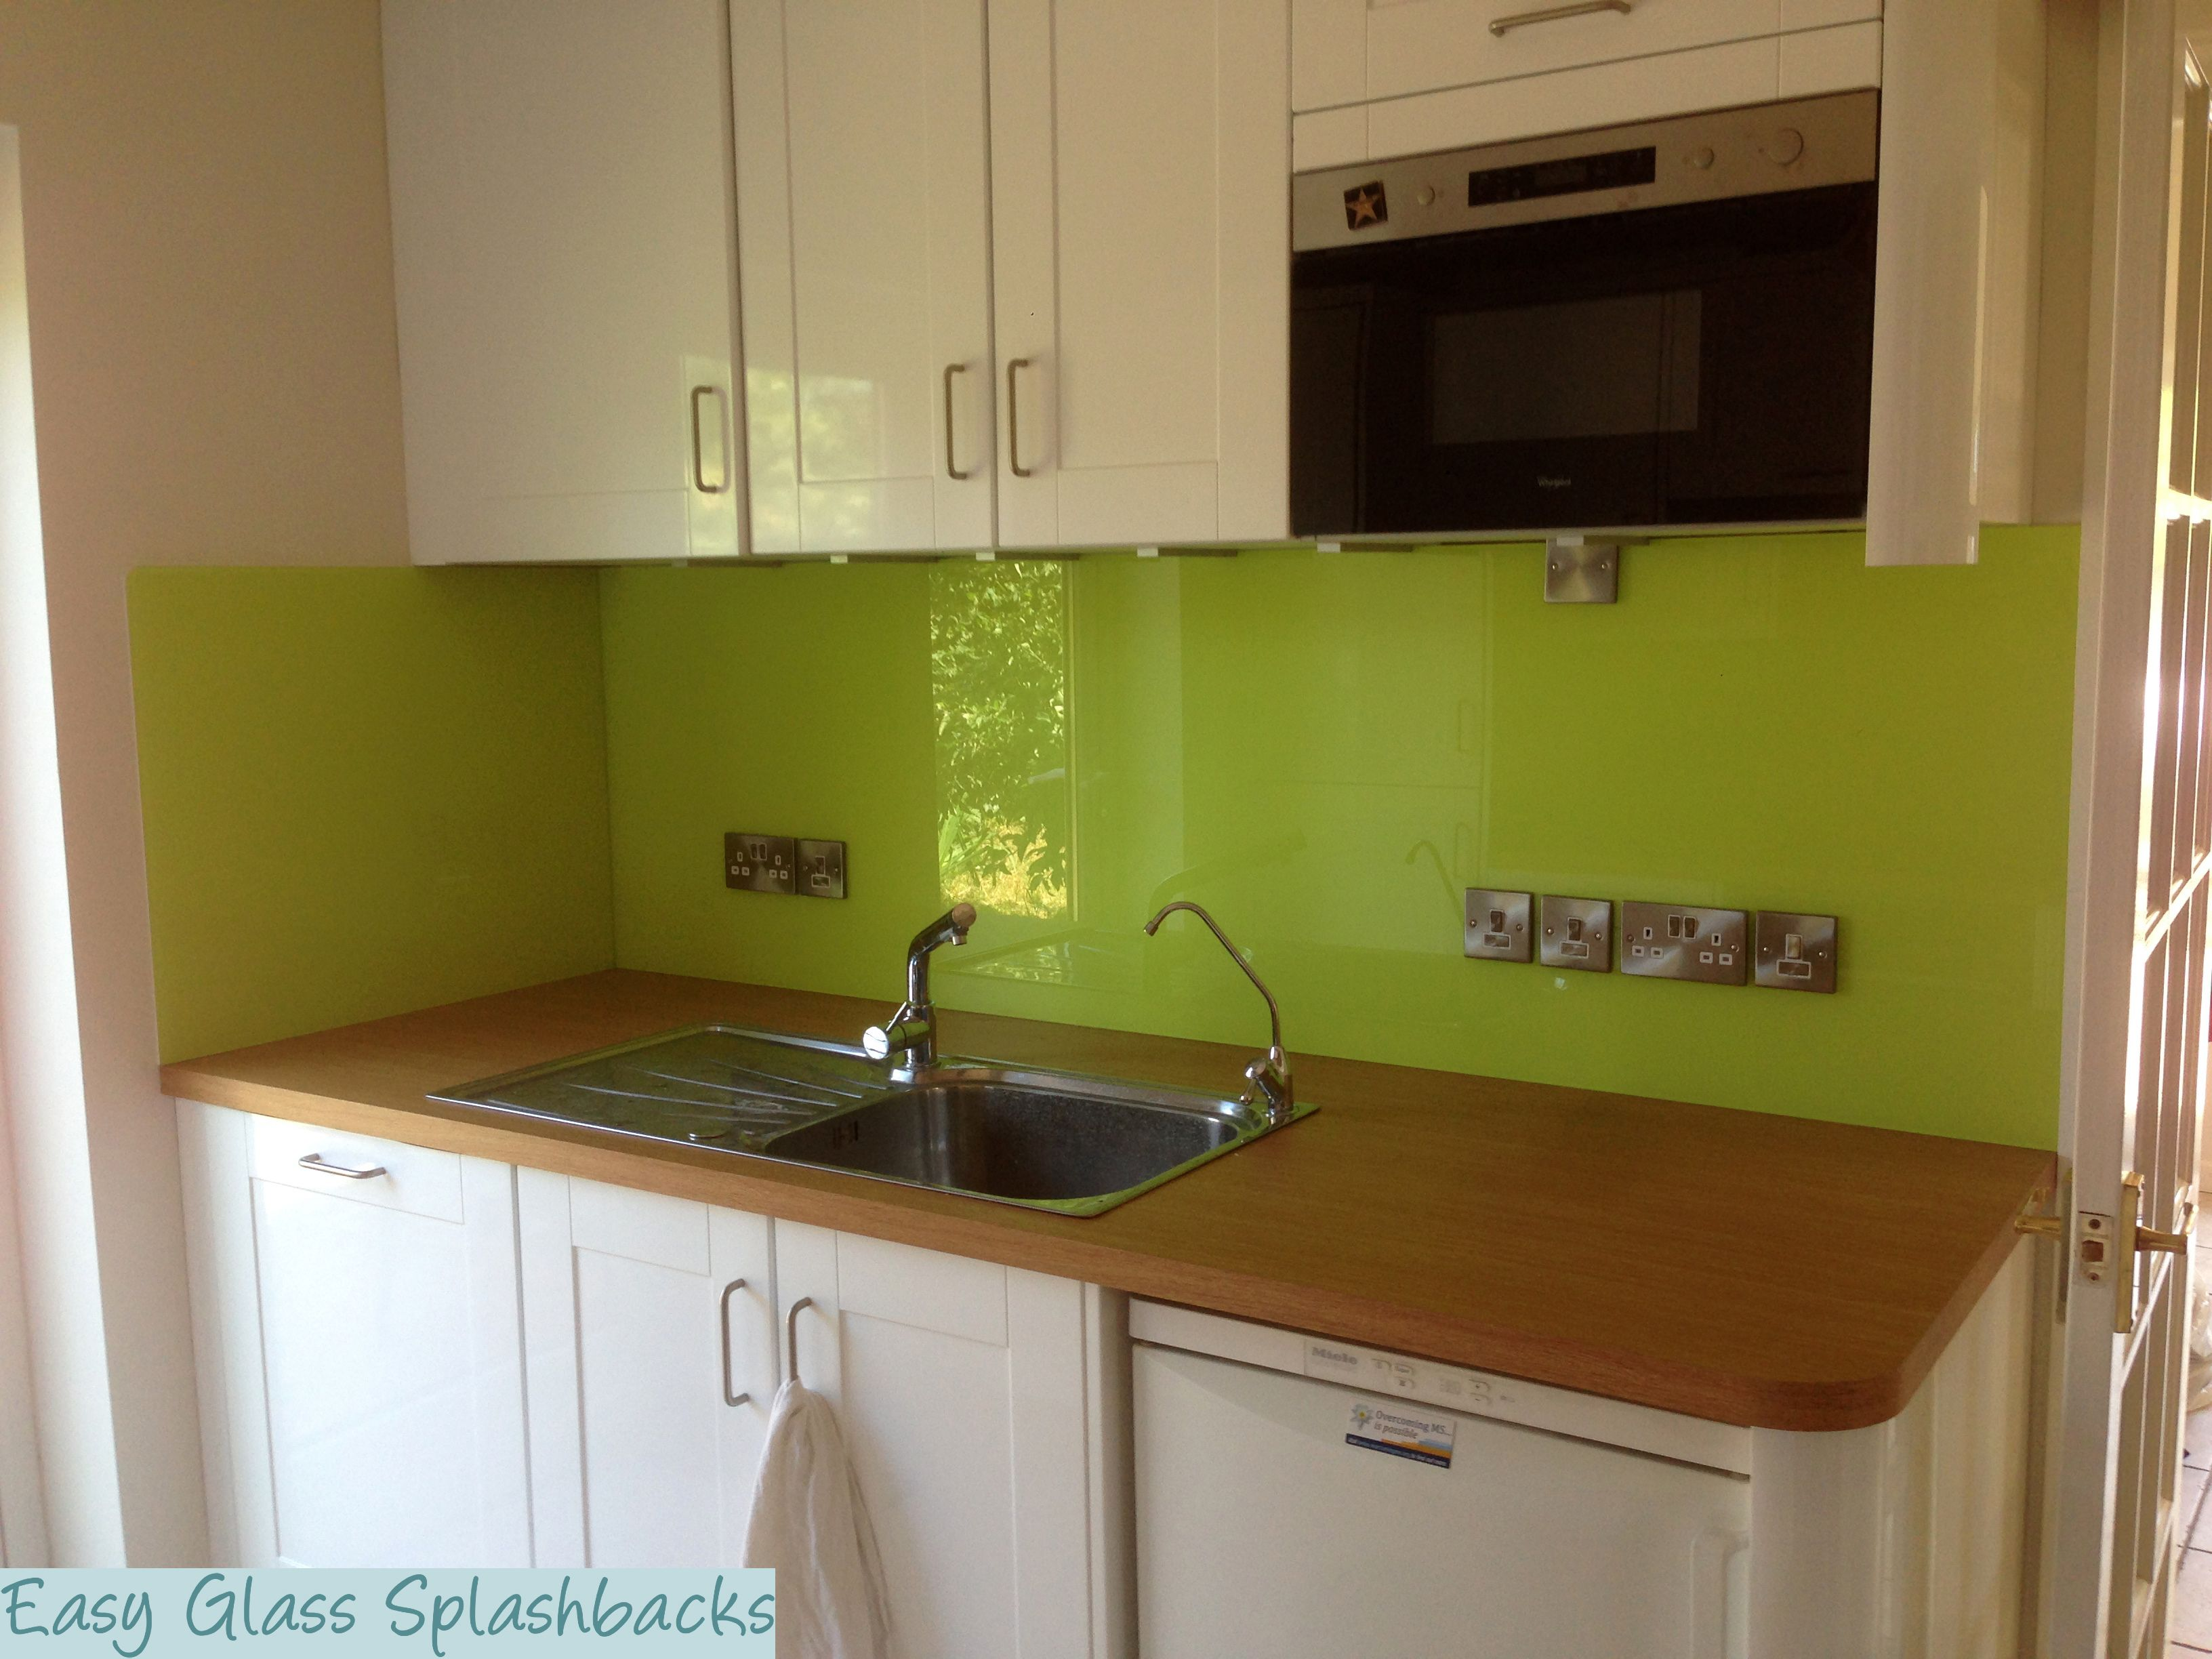 lime green glass splashback an excellent choice against a white